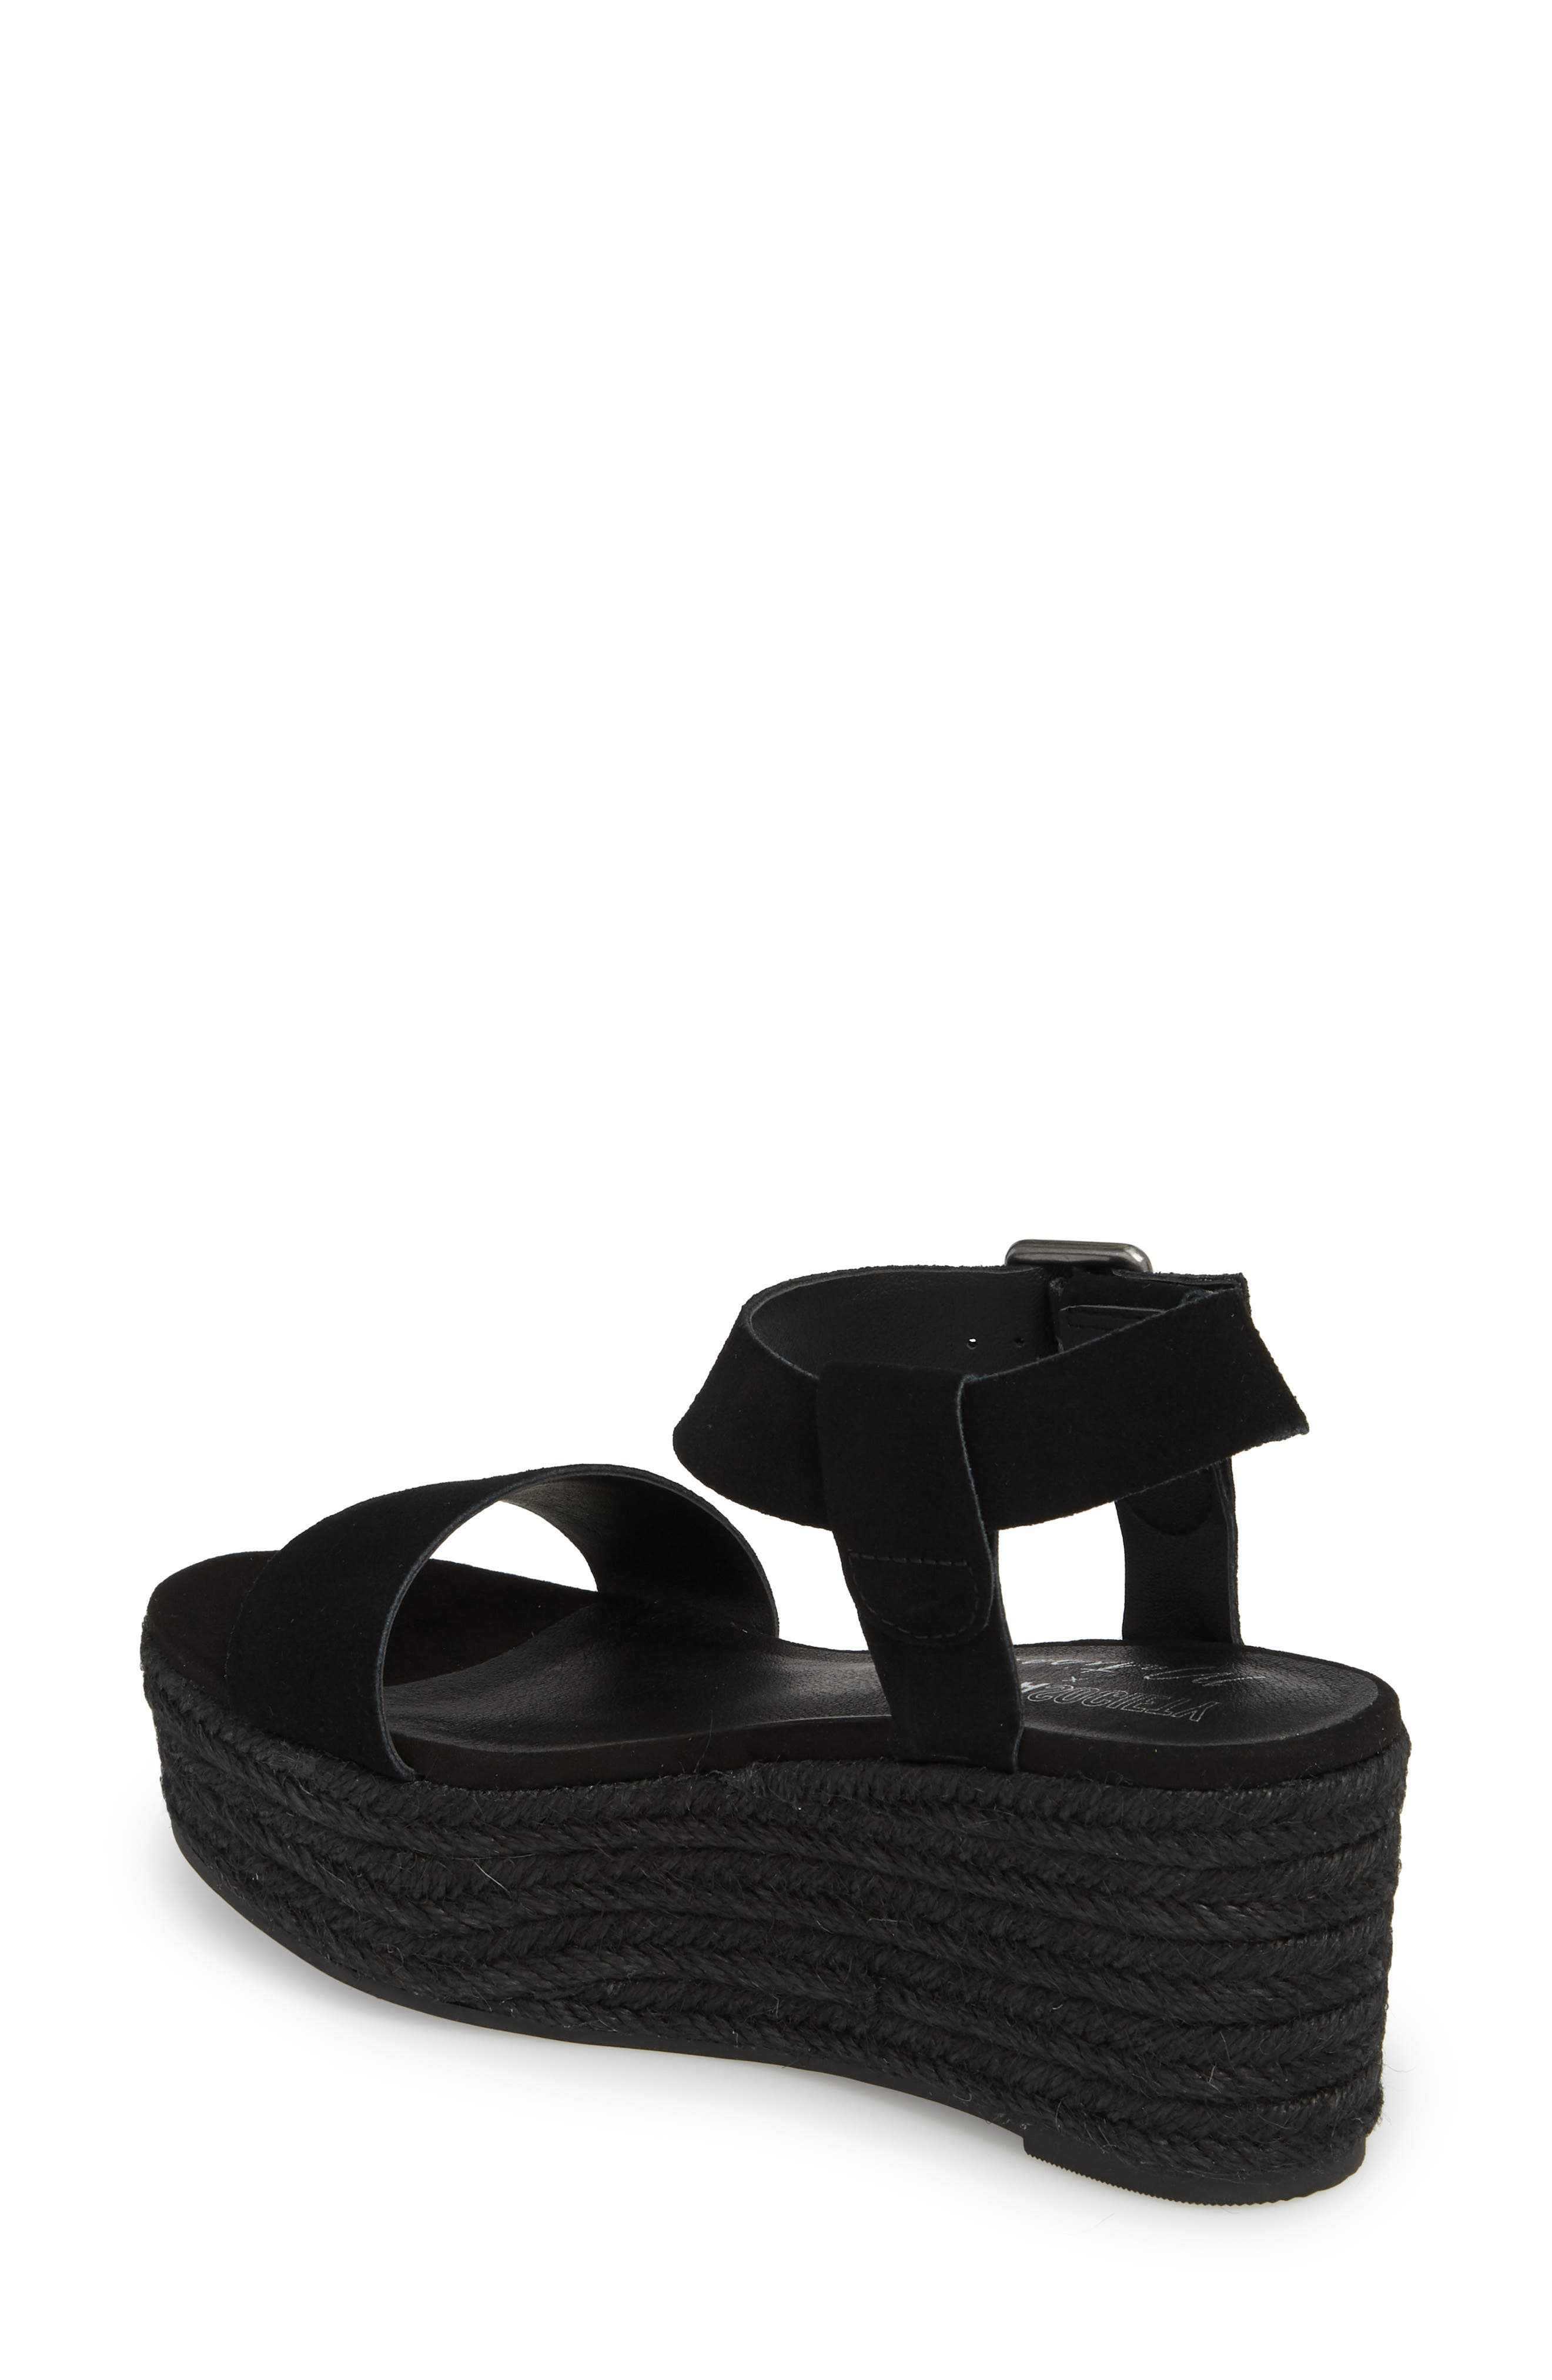 Amuse Society x Matisse Siena Wedge Sandal,                             Alternate thumbnail 2, color,                             017